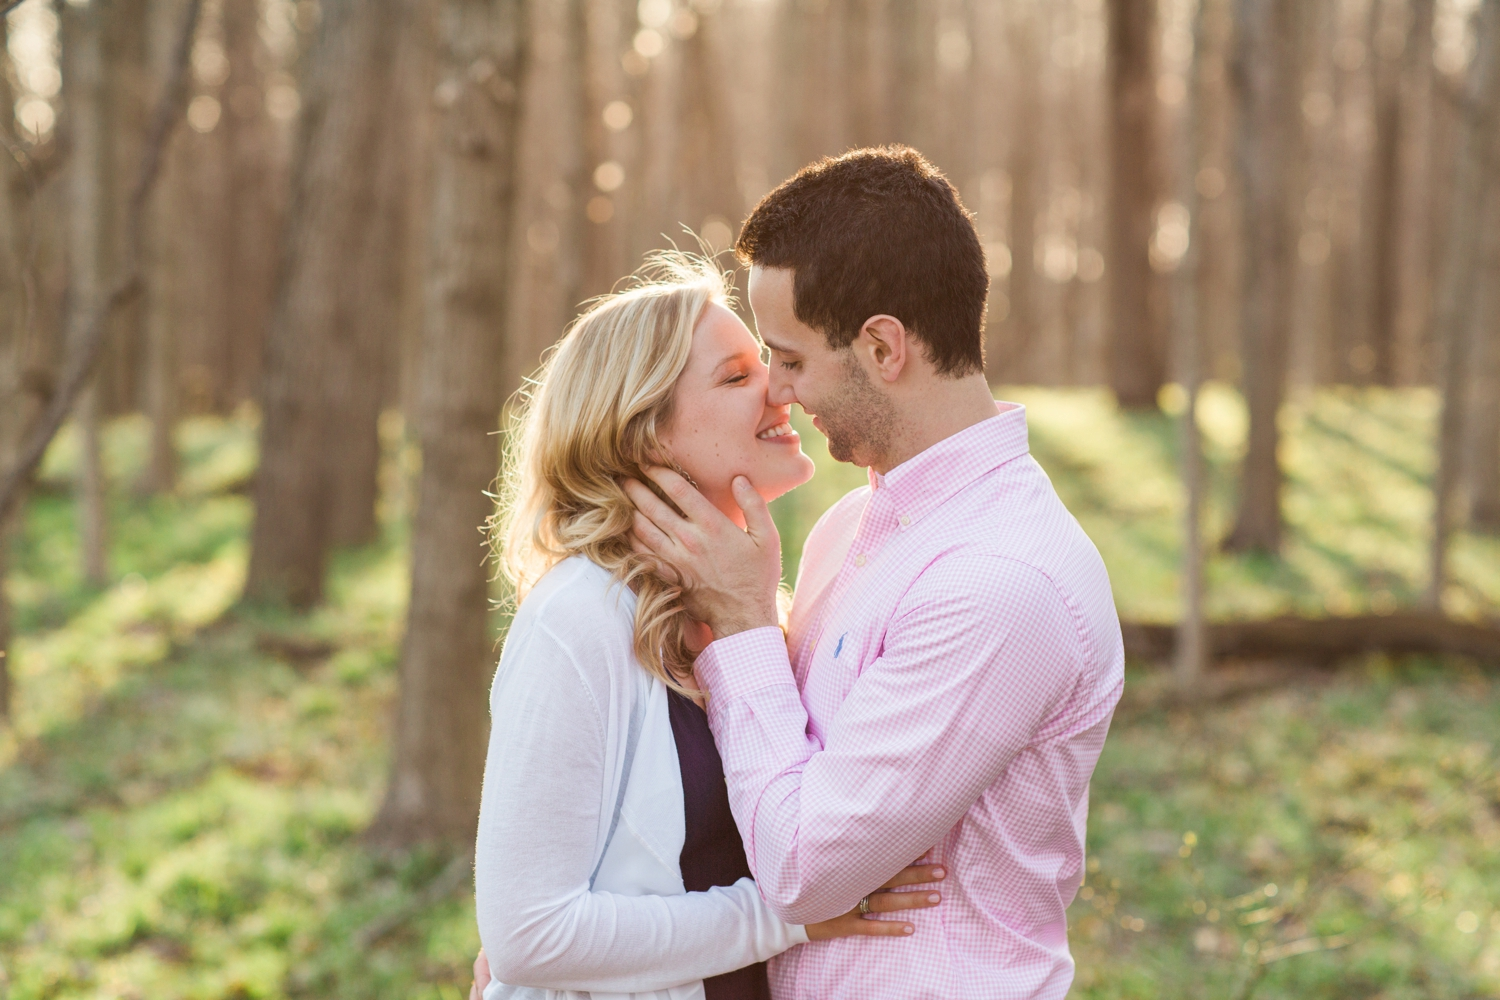 indianapolis_wedding_photographer_golden_hour_engagement_chloe_luka_photography_6110.jpg